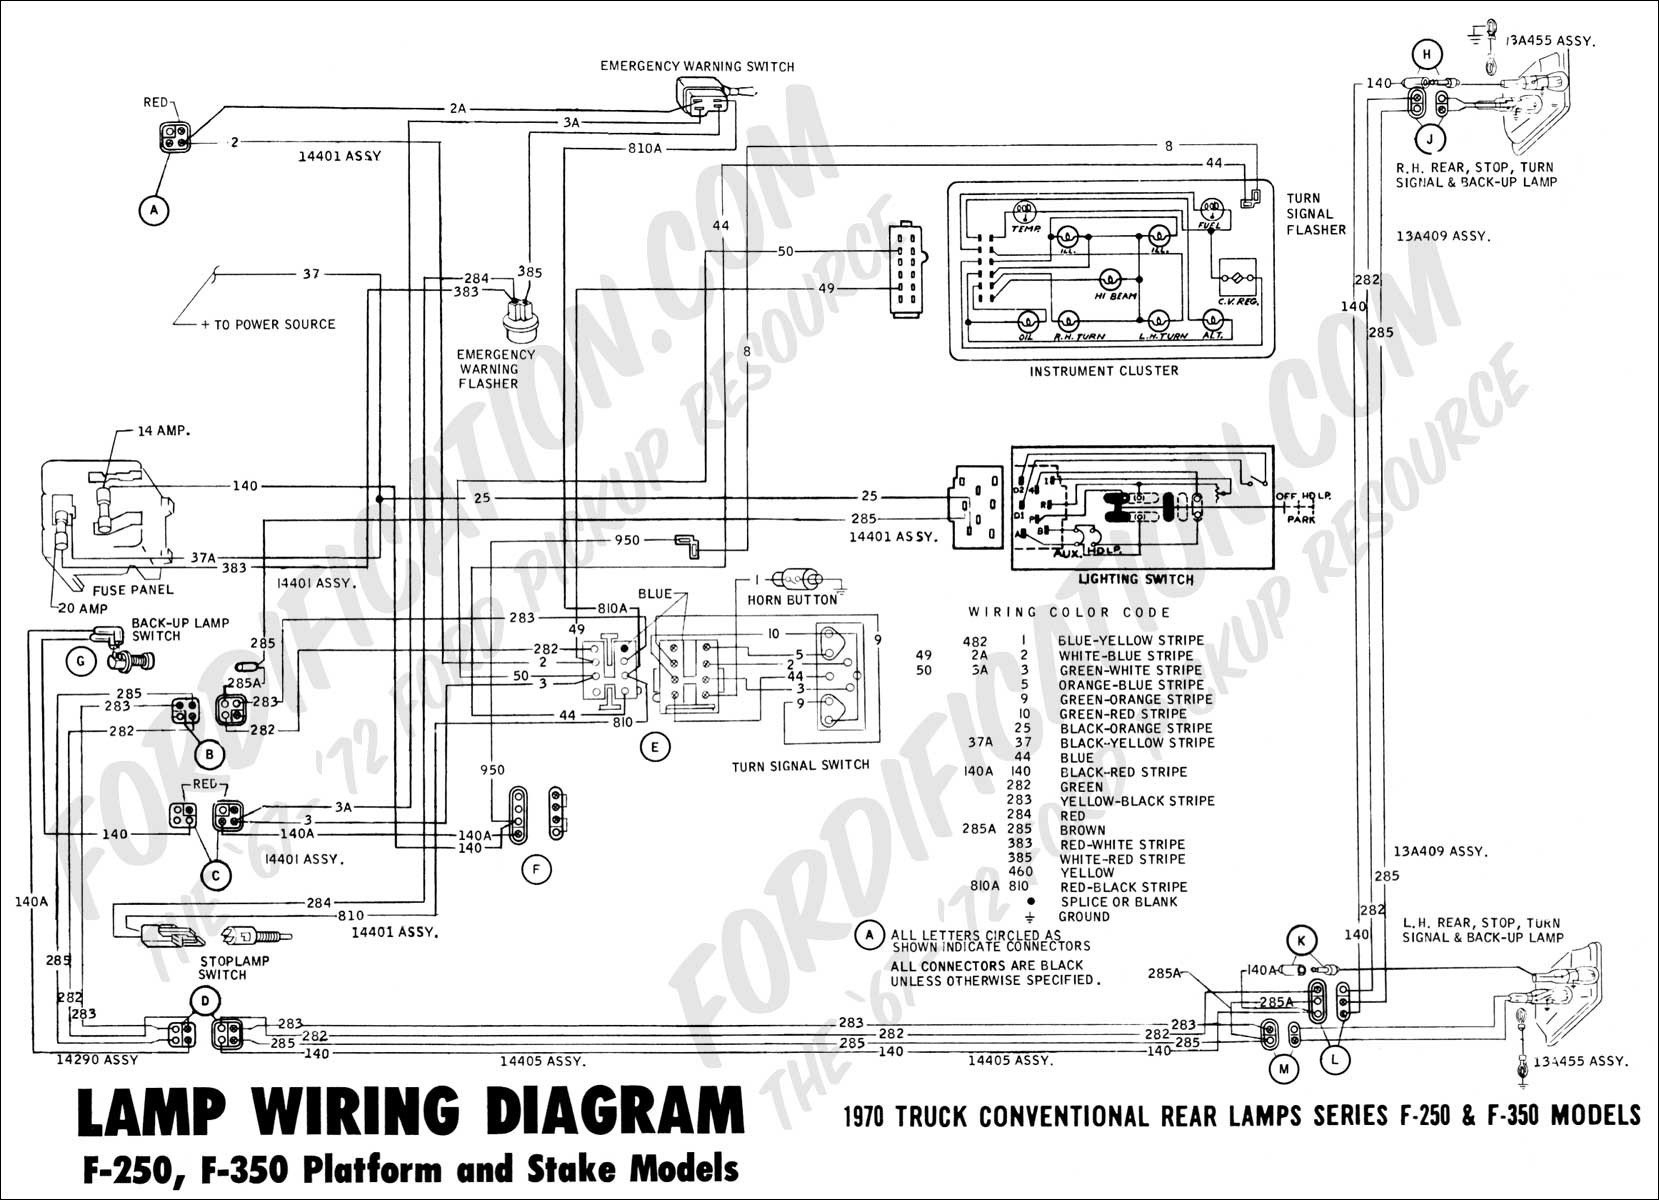 1998 F150 Trailer Light Wiring Diagram Detailed Diagrams Kenworth Brakelights Brake Lights Manual Of U2022 2000 Ford F 150